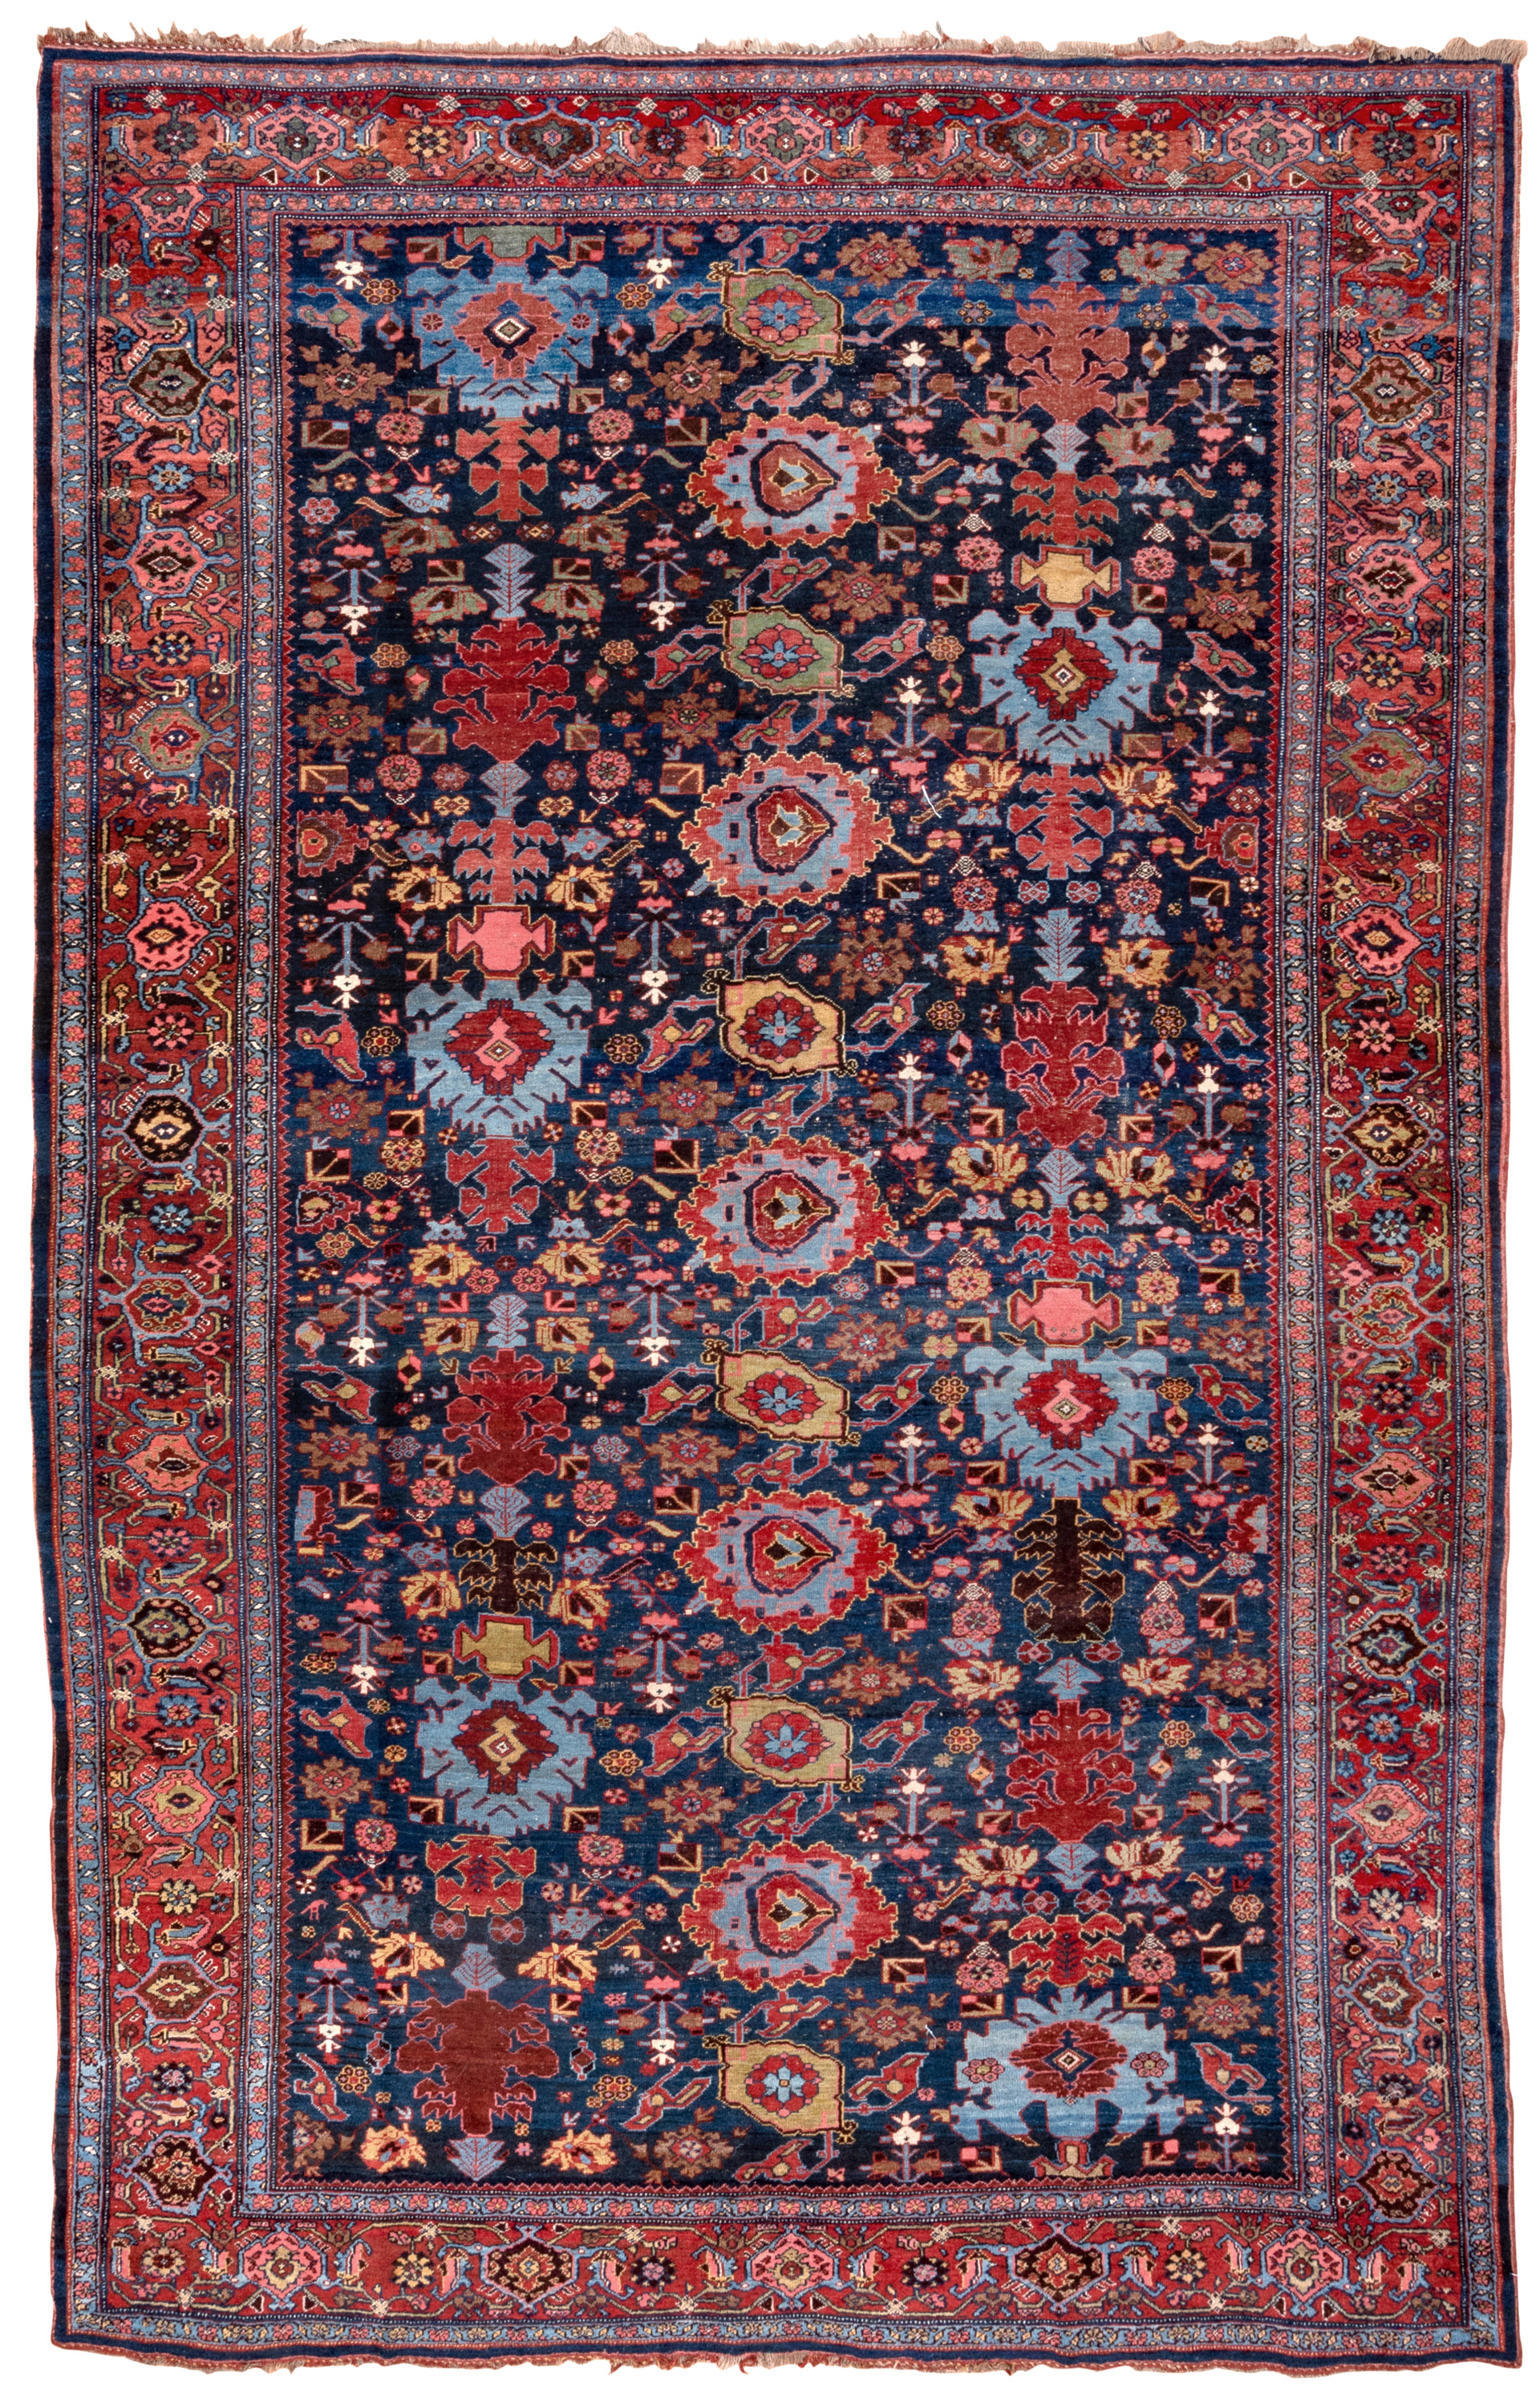 """Antique Persian Bidjar carpet with the Harshang design on a navy blue field. A red """"Turtle"""" design border frames the field."""